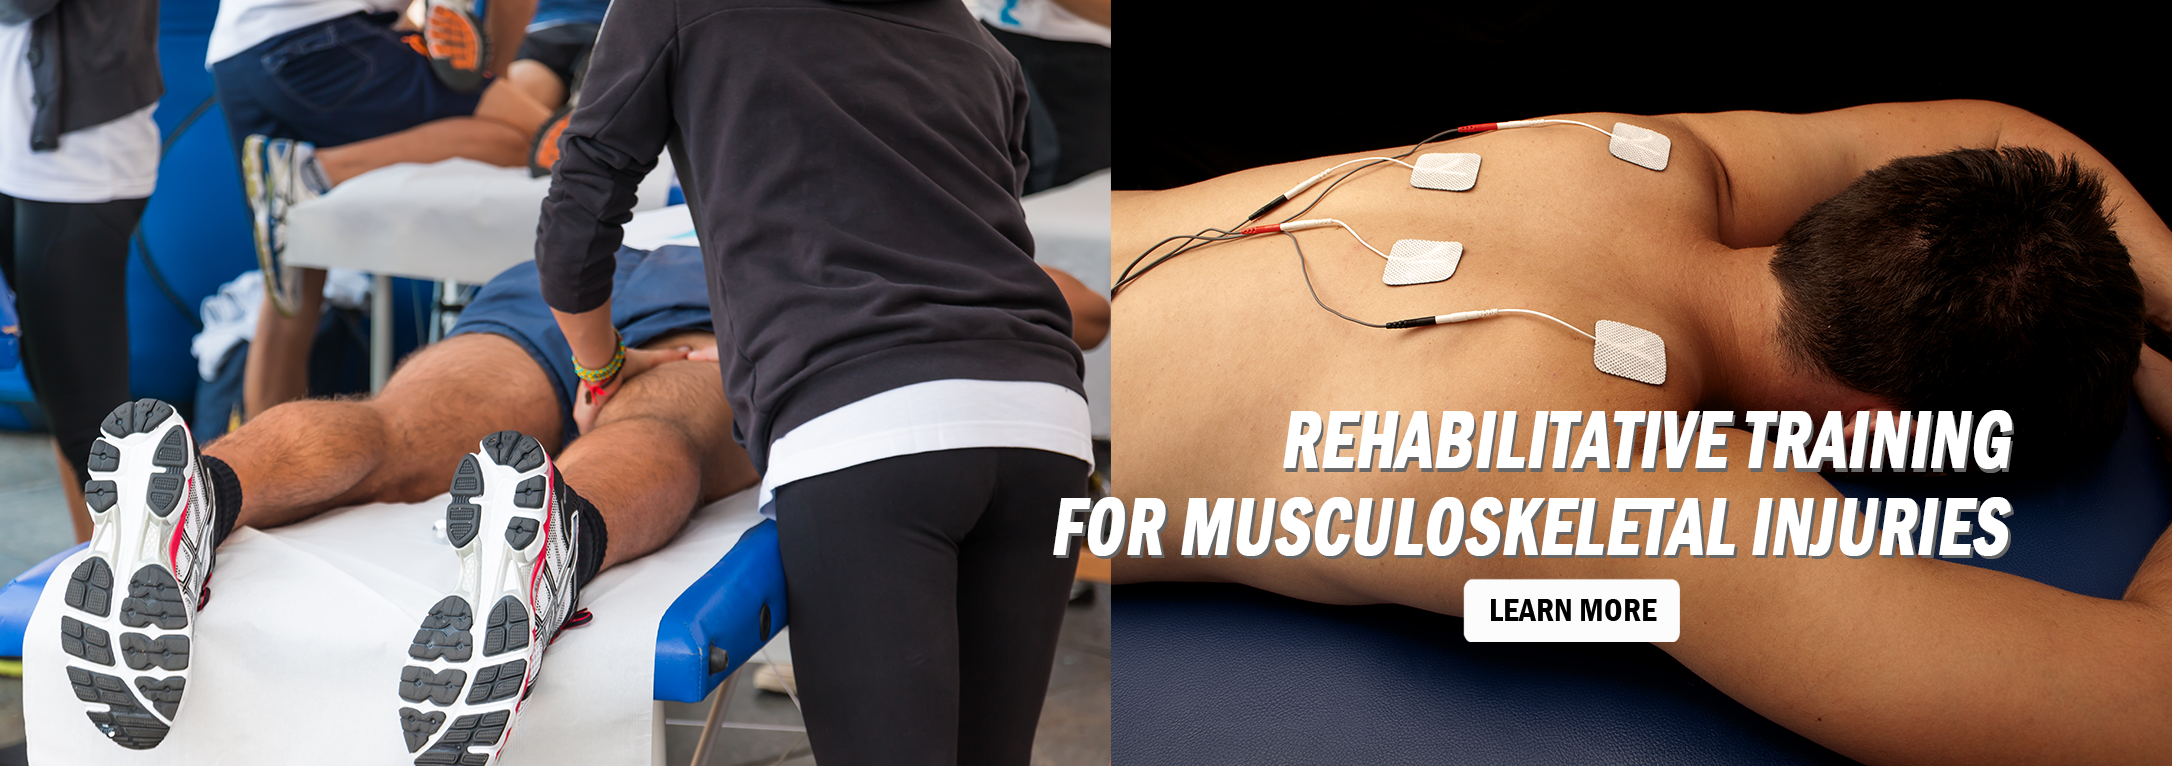 Rehabilitative Training for Musculoskeletal Injuries Home Slider Image